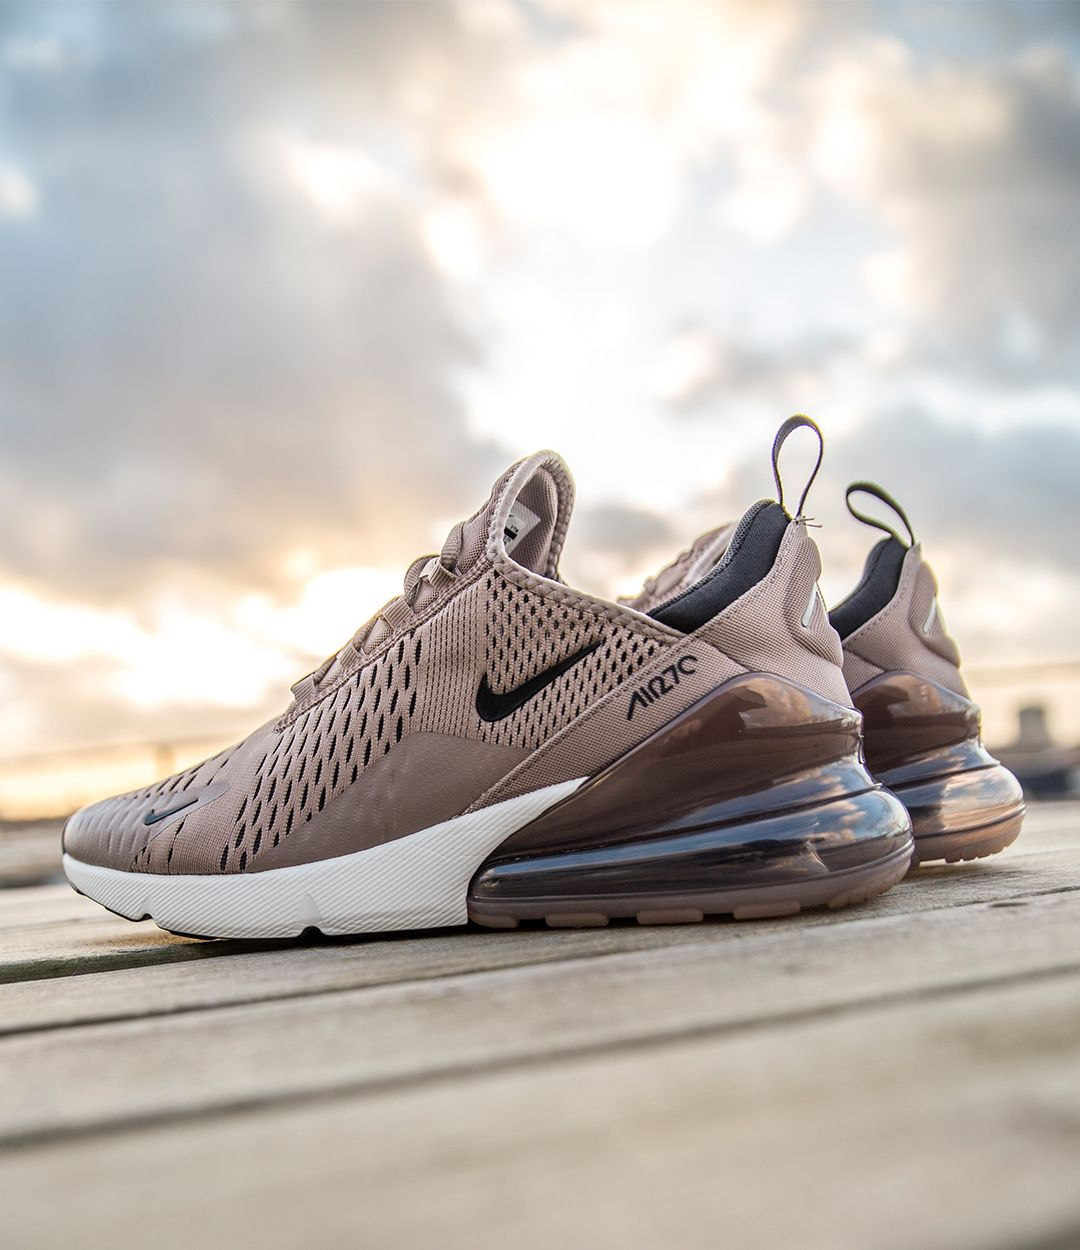 nike air max 270 camel brown